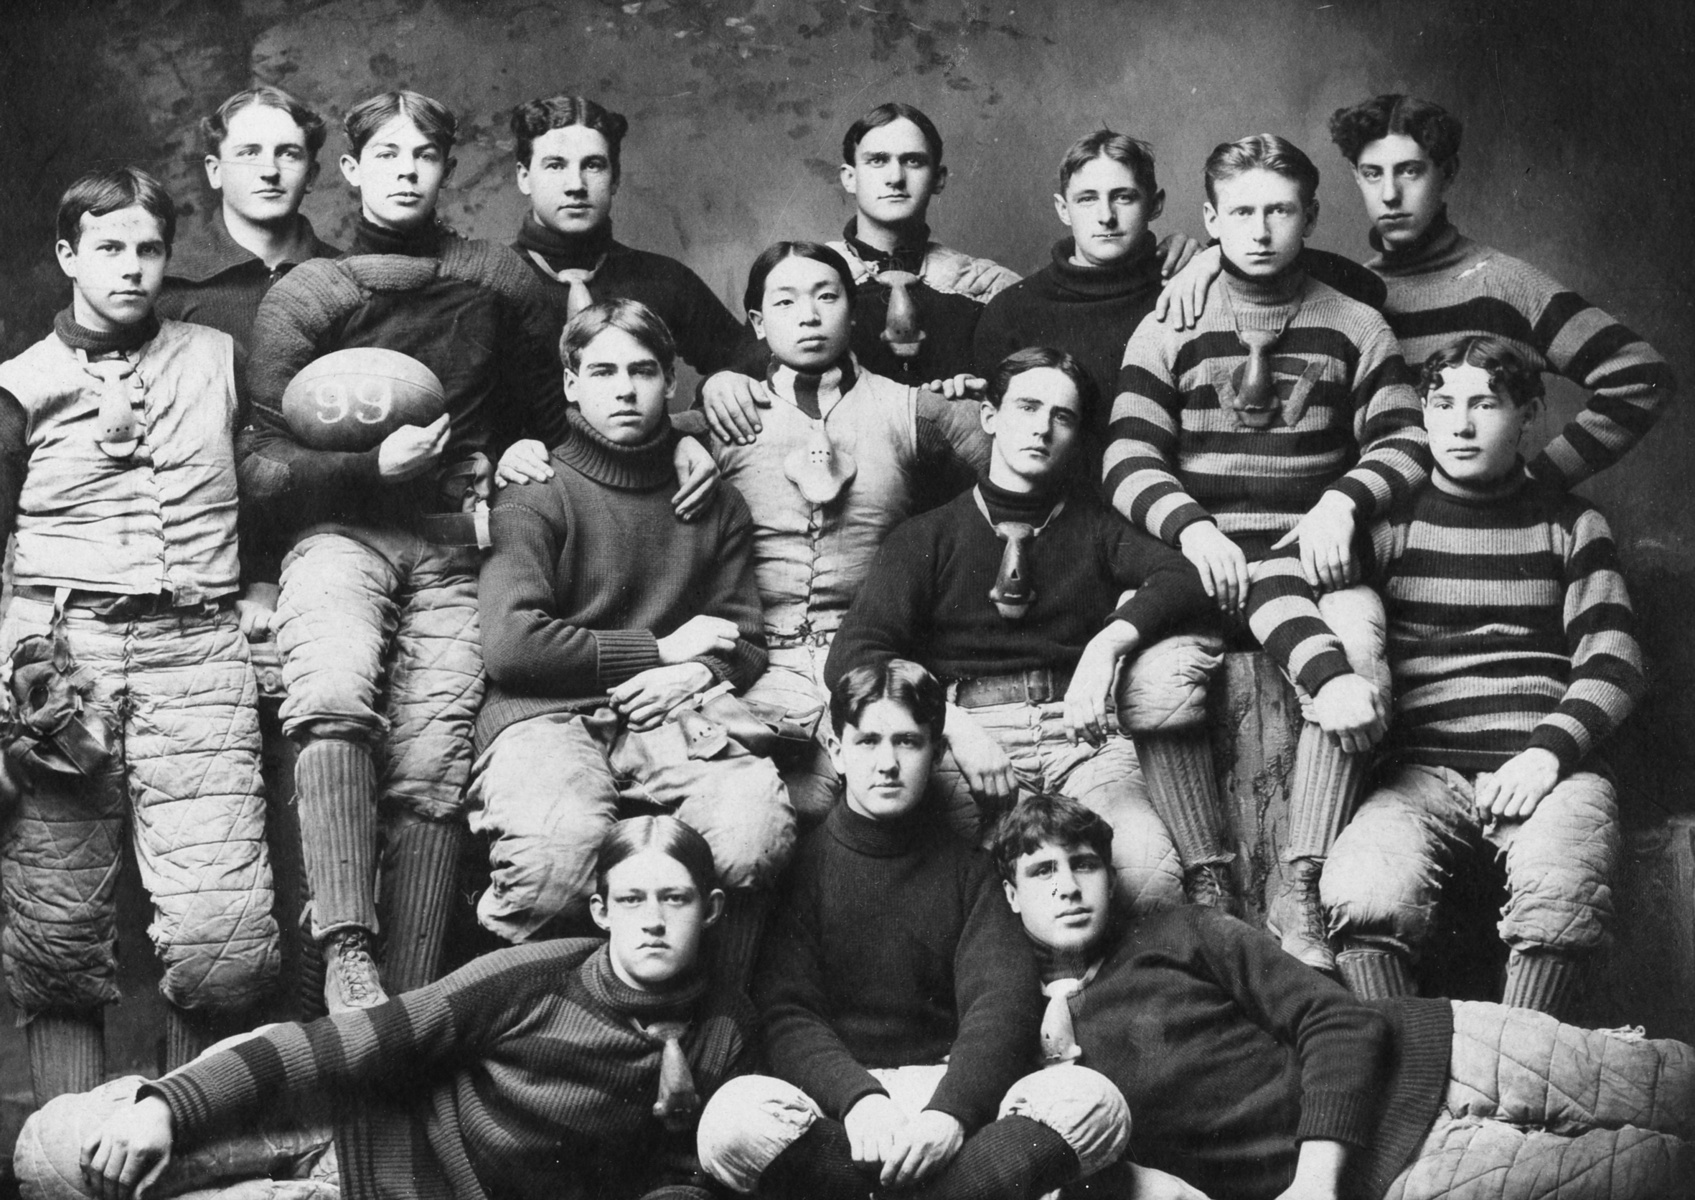 Black and white historic image of young men in rugby uniforms